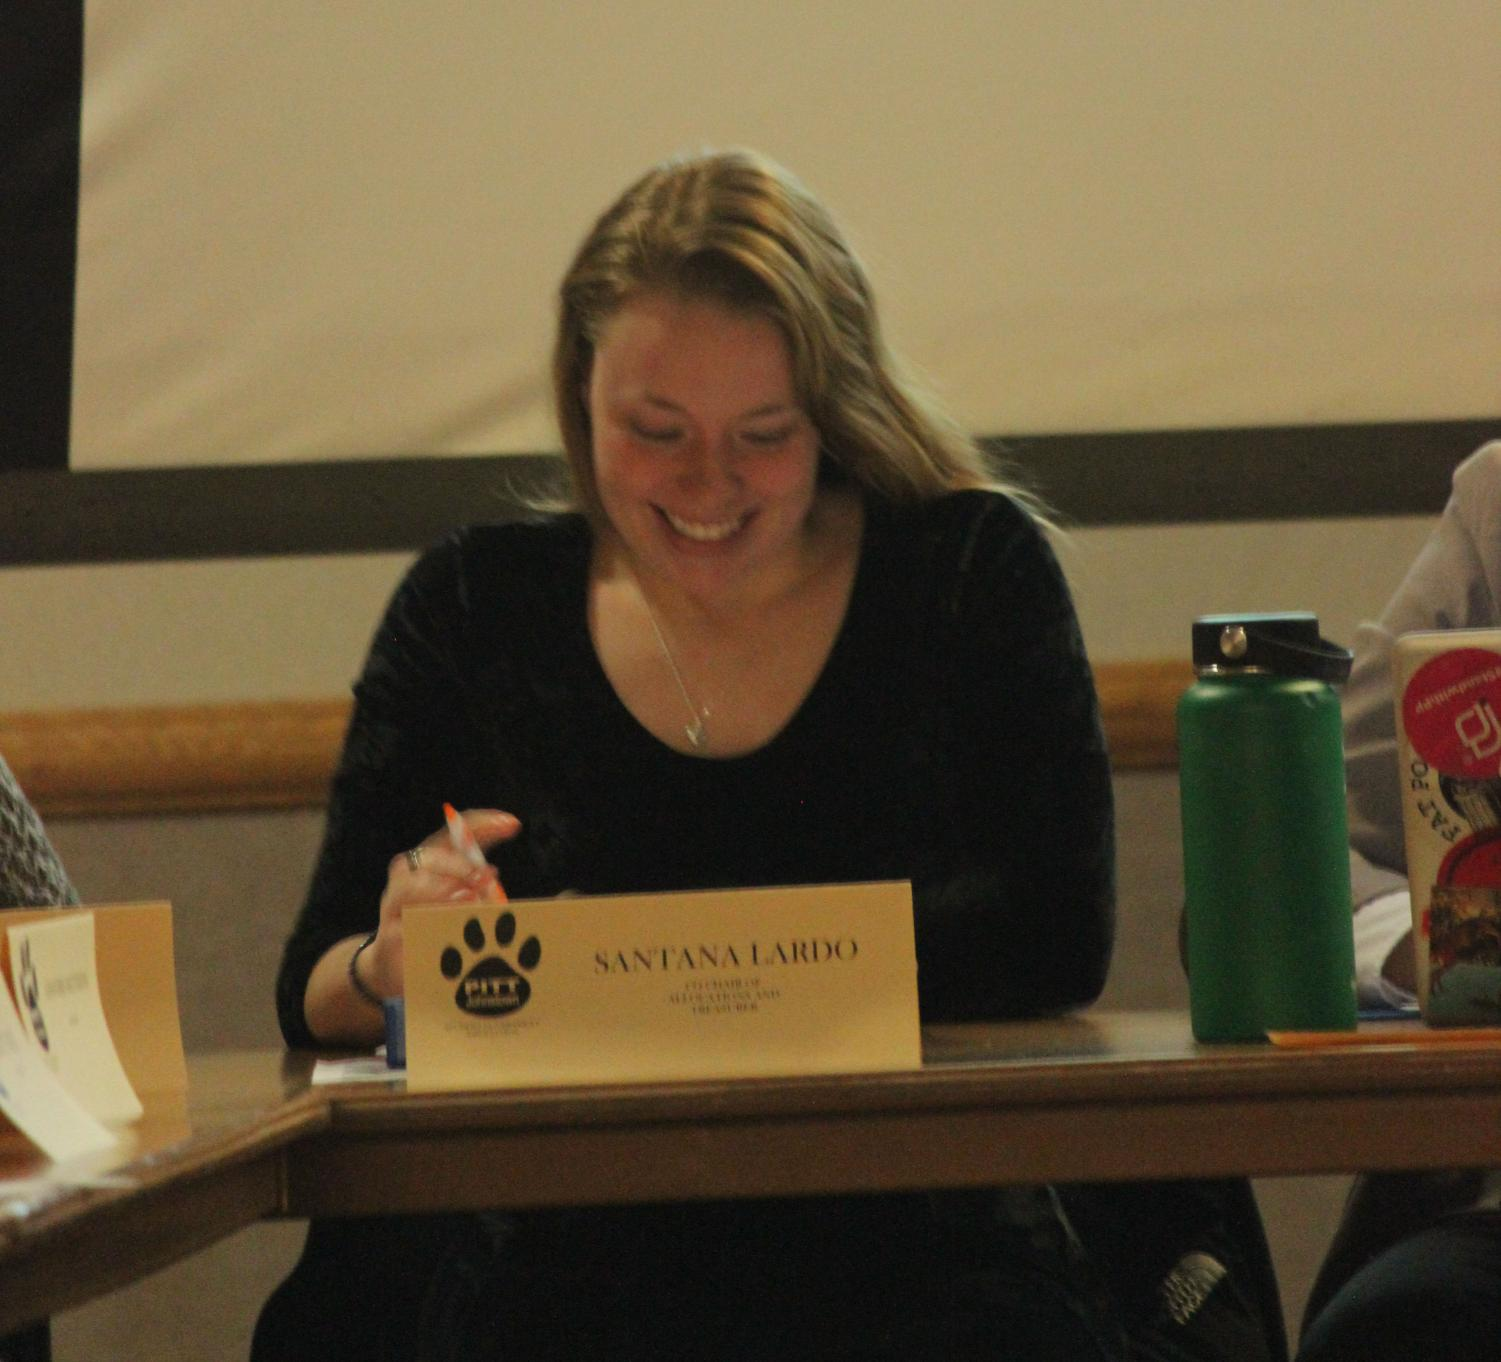 Student Government Treasurer Santana Lardo announces the emergency funds for this year at last week's student government meeting.